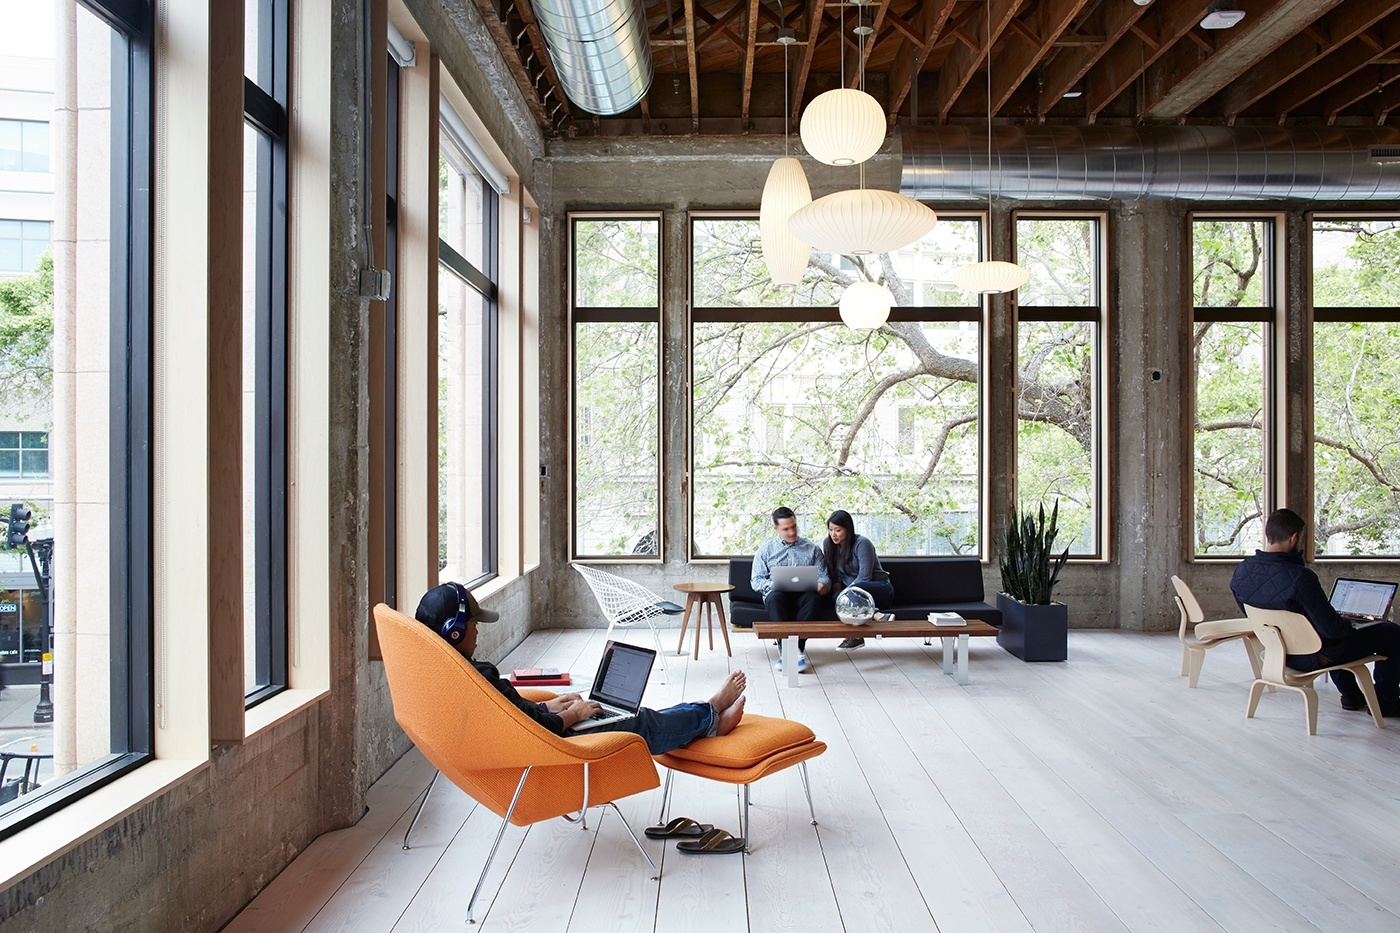 A look inside vsco s amazing headquarters in oakland for Office 15 design